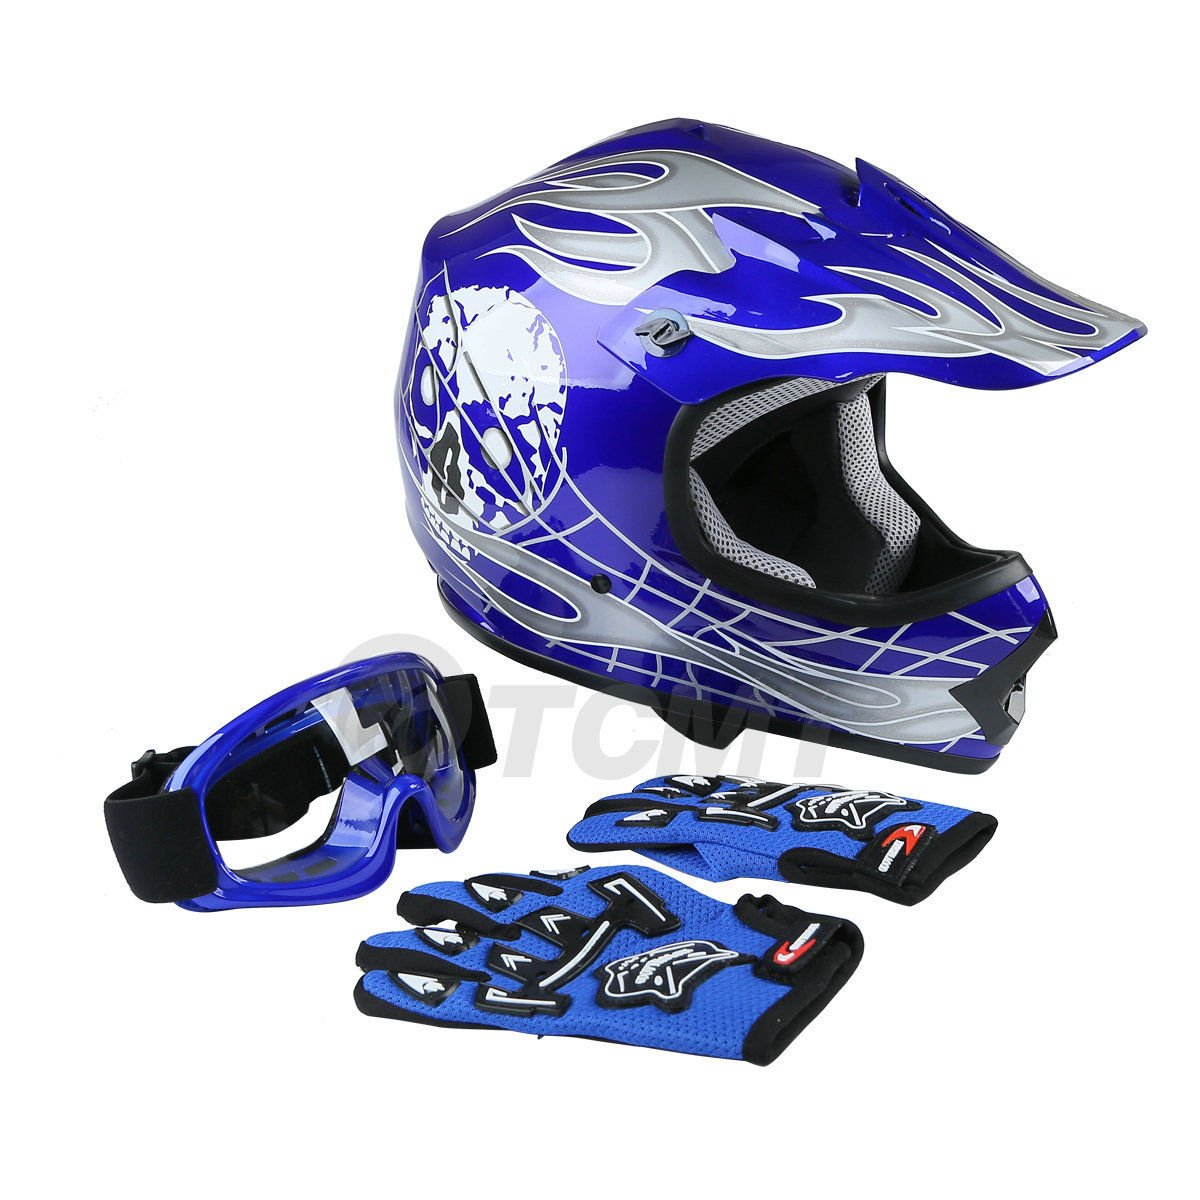 TCMT Dot Youth & Kids Motocross Offroad Street Helmet Blue Skull Motorcycle Helmet White Dirt Bike Dirt Bike Helmet+Goggles+gloves (XL, Blue) by TCMT